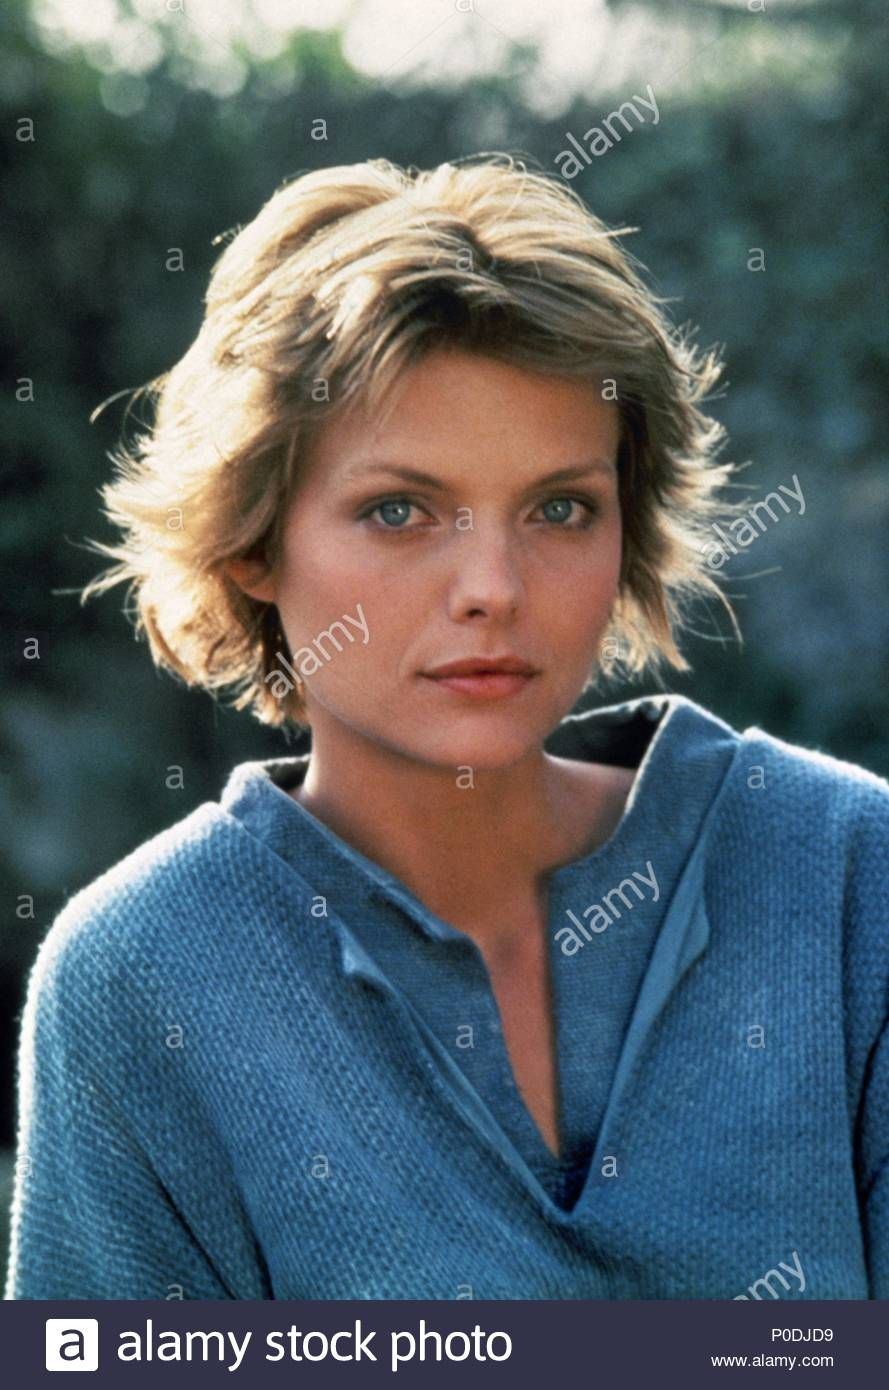 michelle pfeiffer ladyhawke 1985 | 80s makeup/hairstyles in